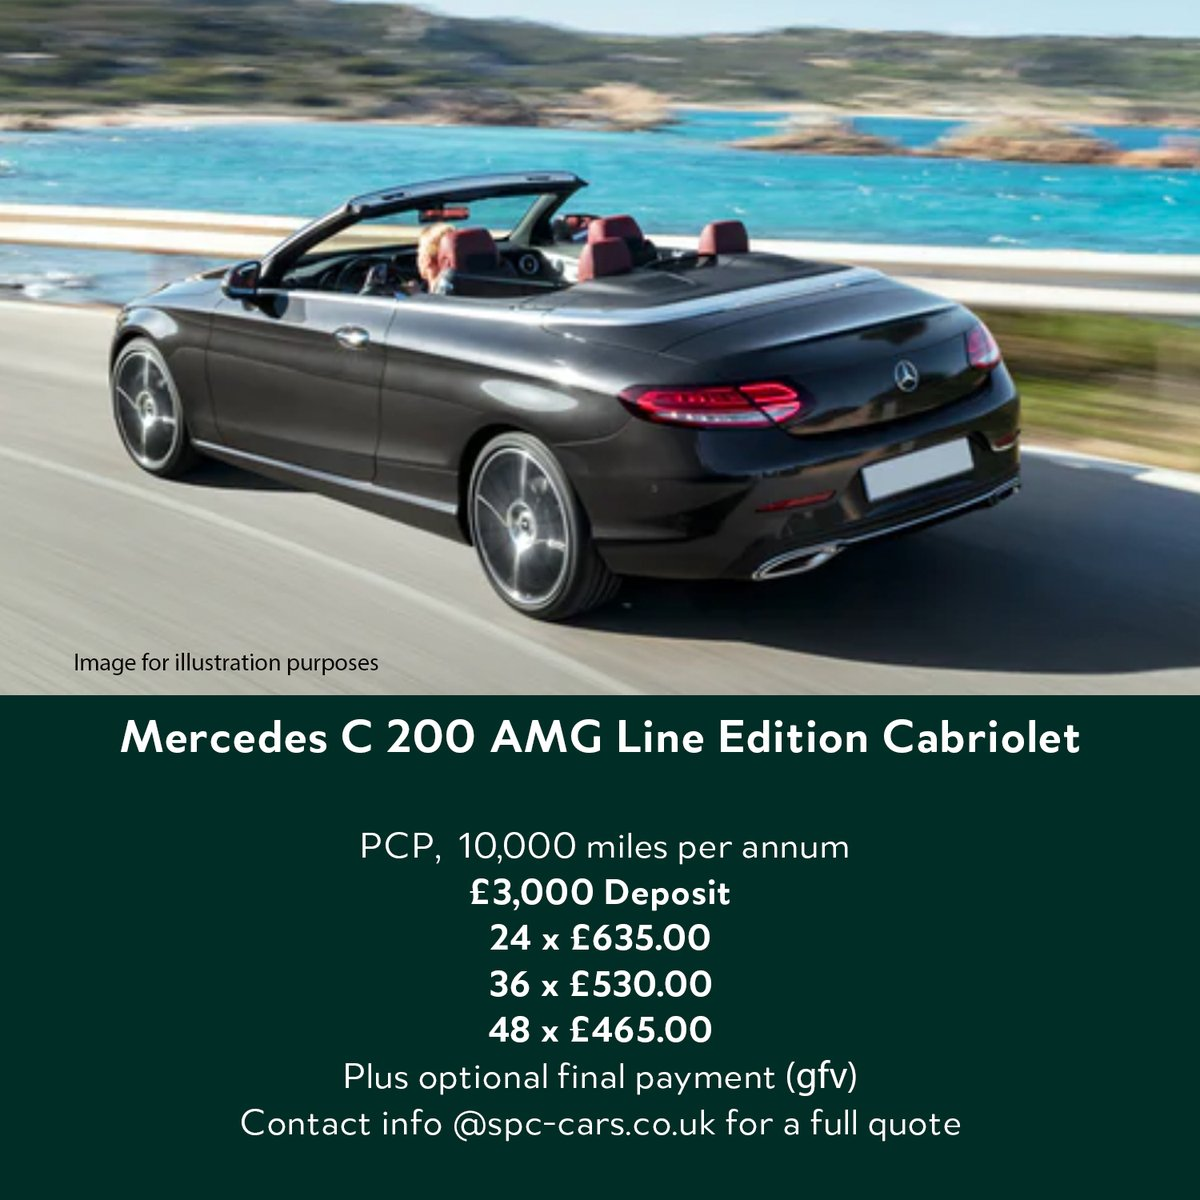 Get ready for the sunshine  The C Cab is a great car to drive, loads of fun  Contact info@spc-cars.co.uk to discuss and reserve yours in time for summer.   https://t.co/Si9BqLwxKM  #mercedes #cclass #convertible #cabriolet #amg #sunshine #newcardeals #pfa #efl #spccars https://t.co/RcXBH6NN7o